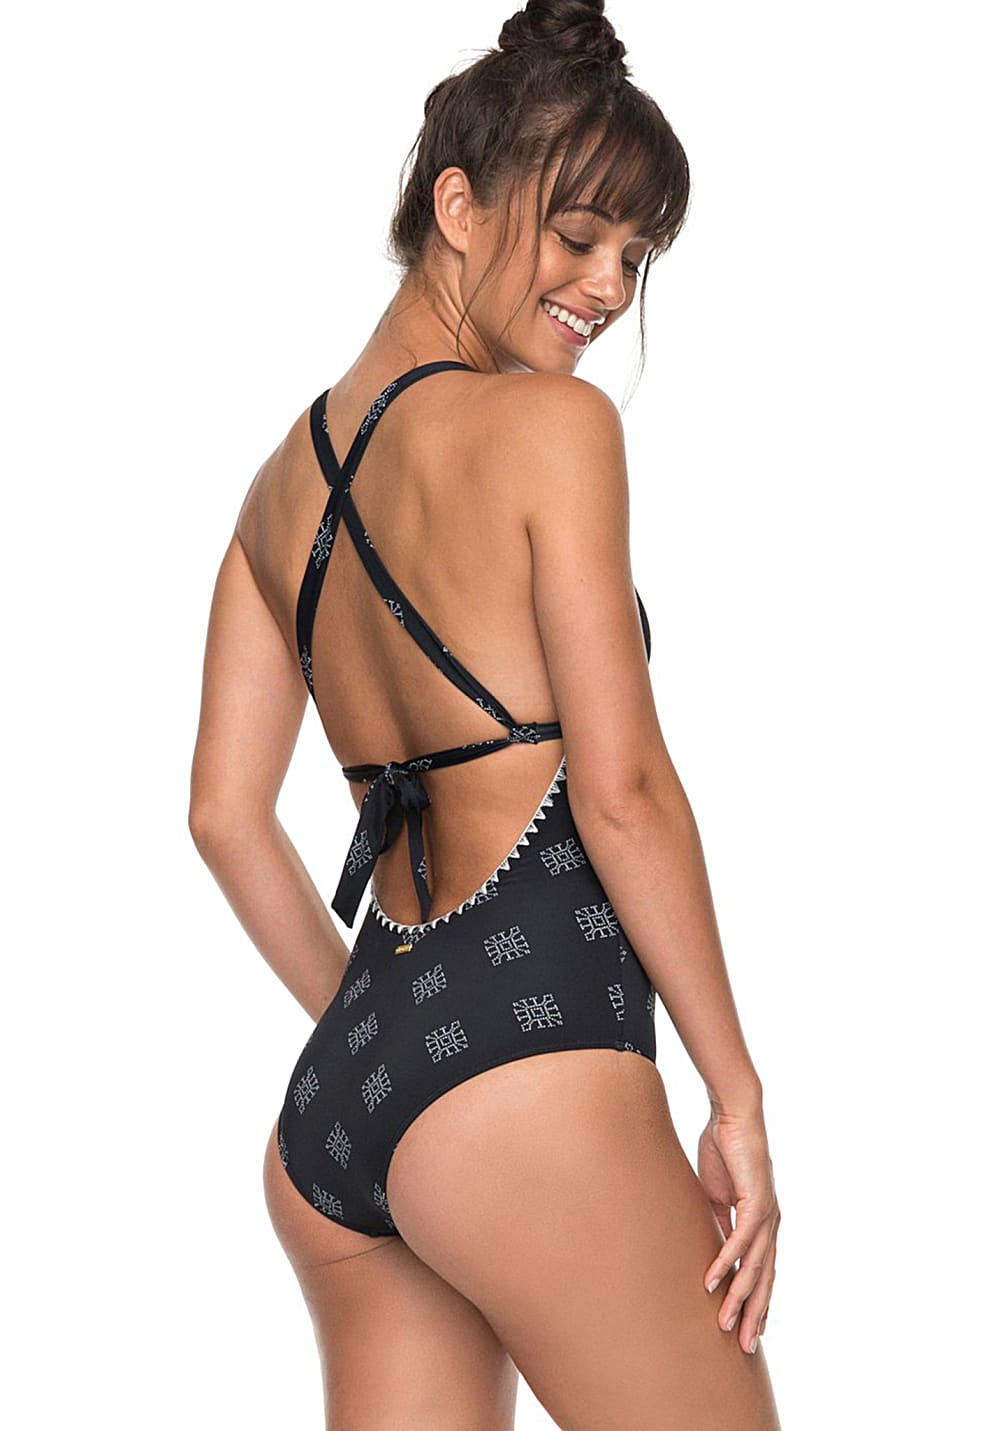 2ad0deea45f0f ... Roxy Take Me To The Sea - One-piece Swimsuit for Women - Black. Back to  Overview. 1  2  3. Previous. Next